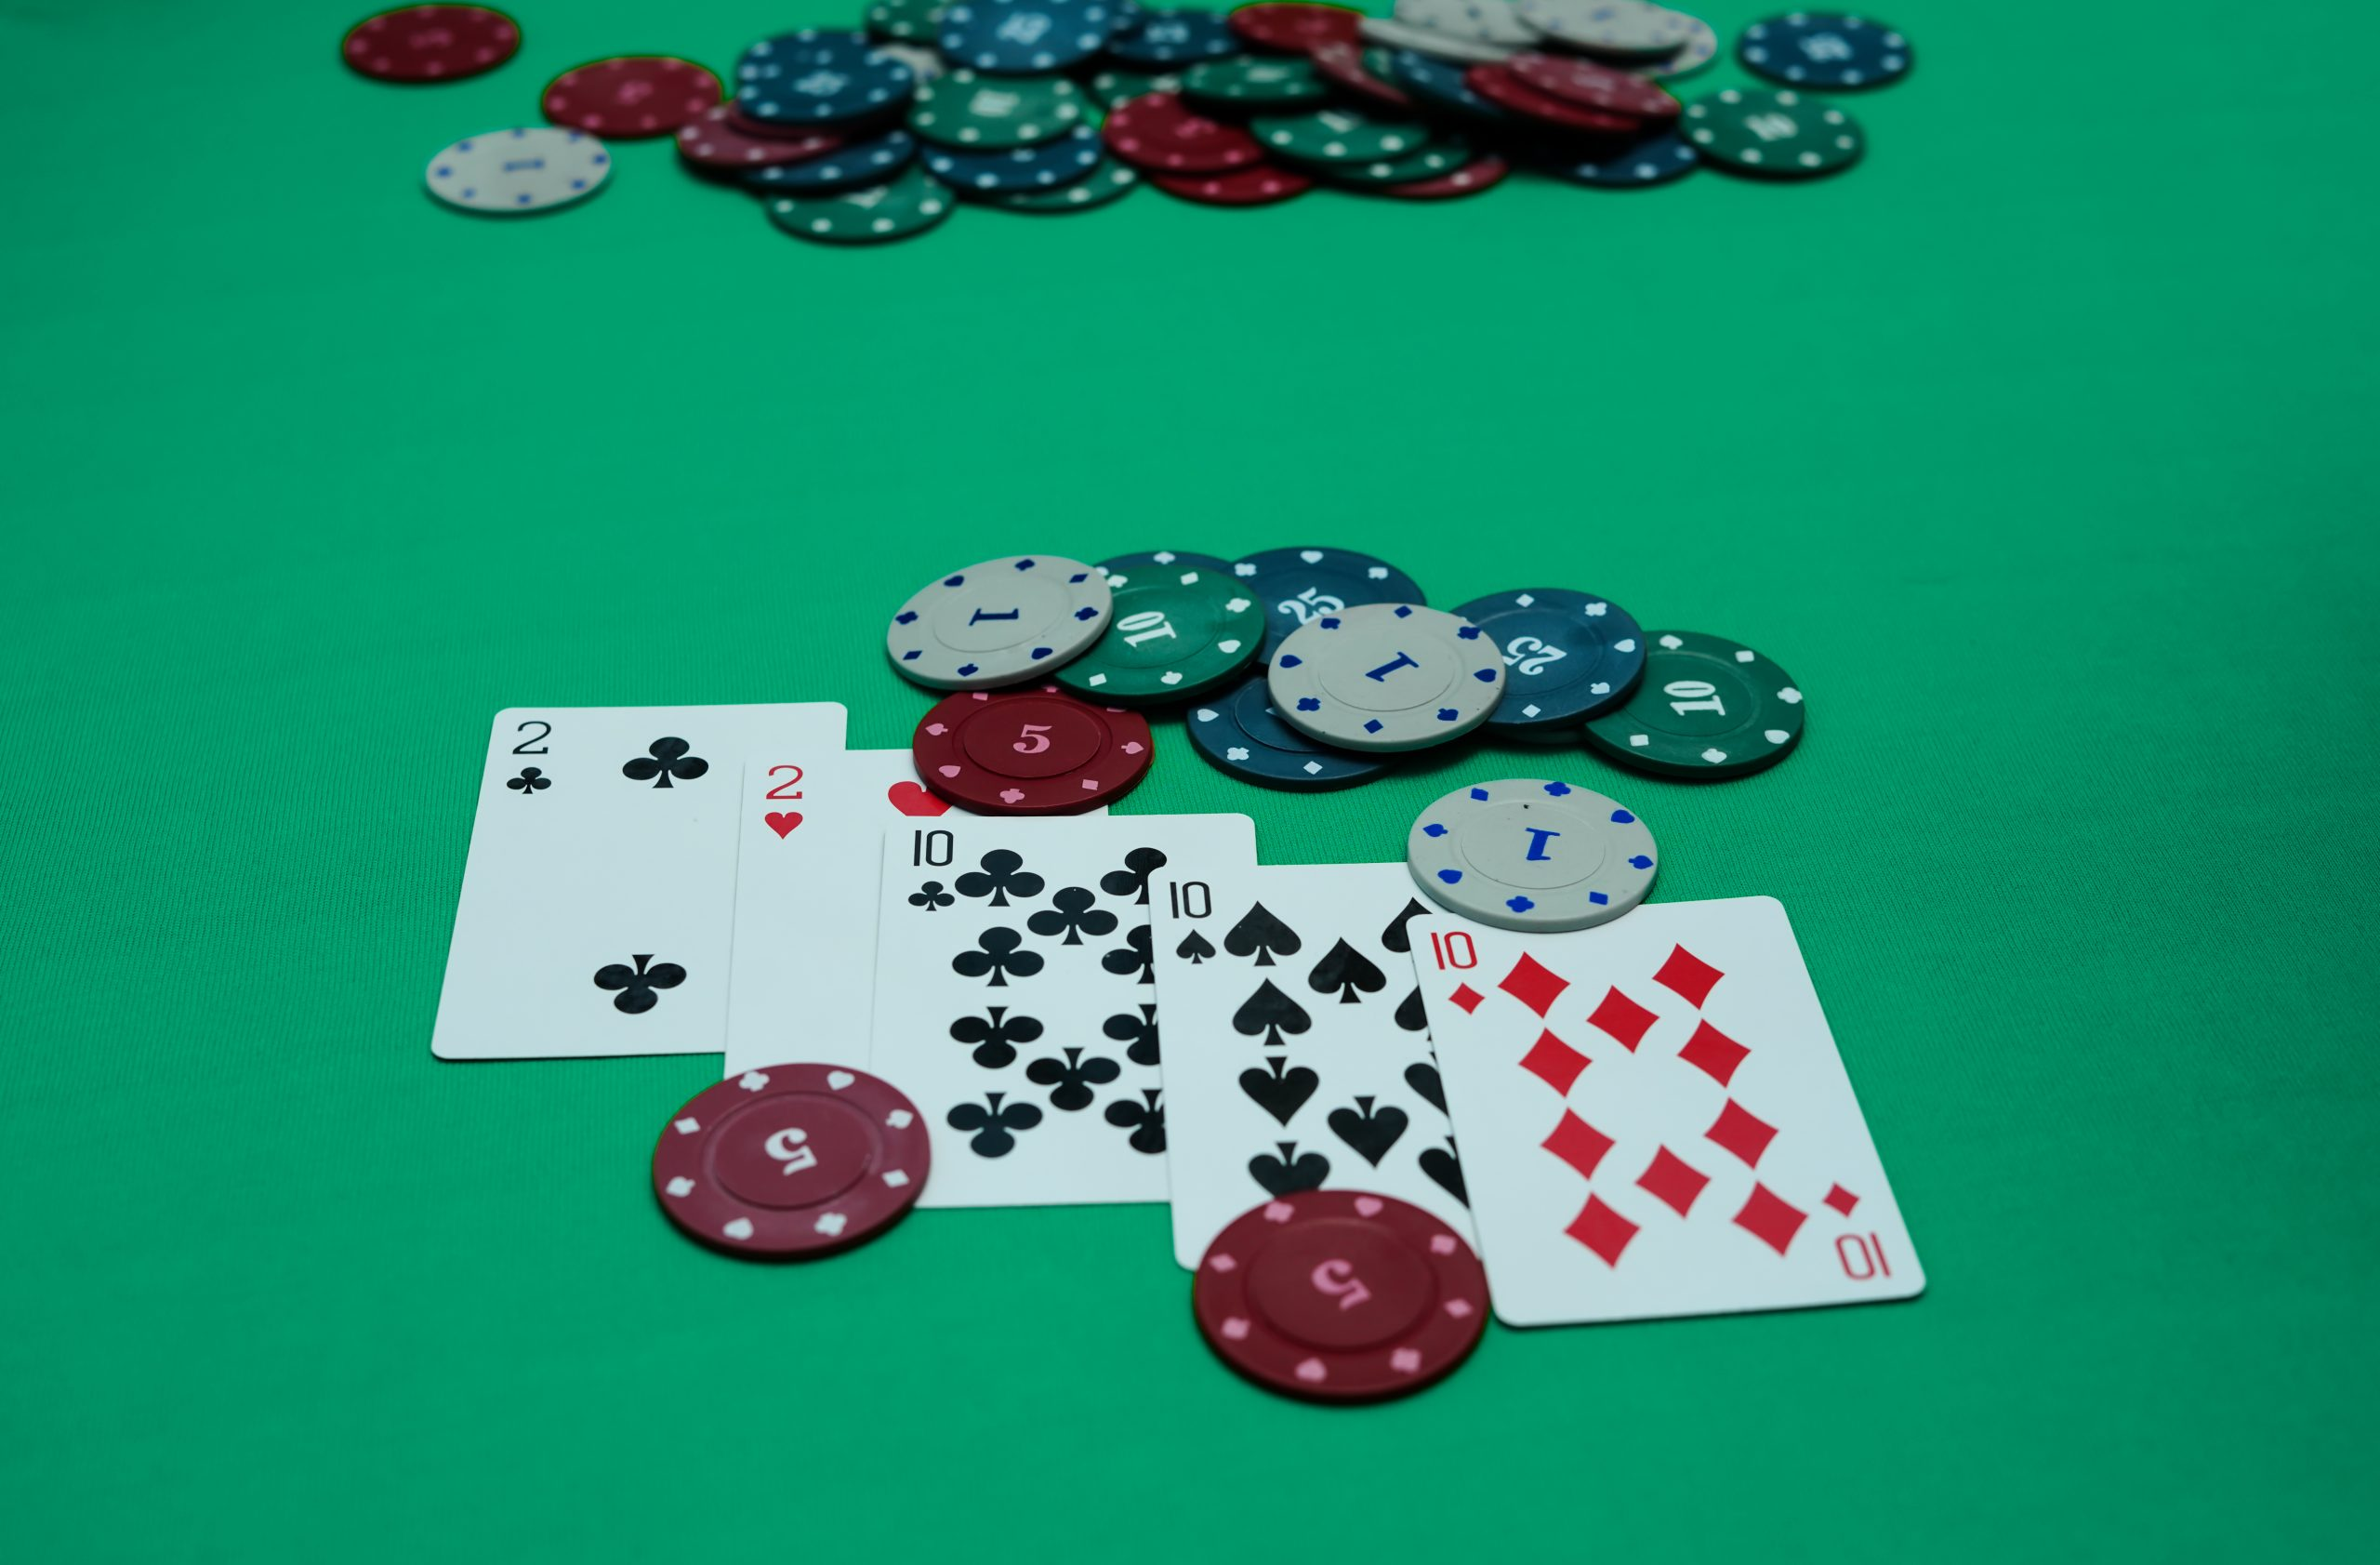 Poker studs and cards on a table.